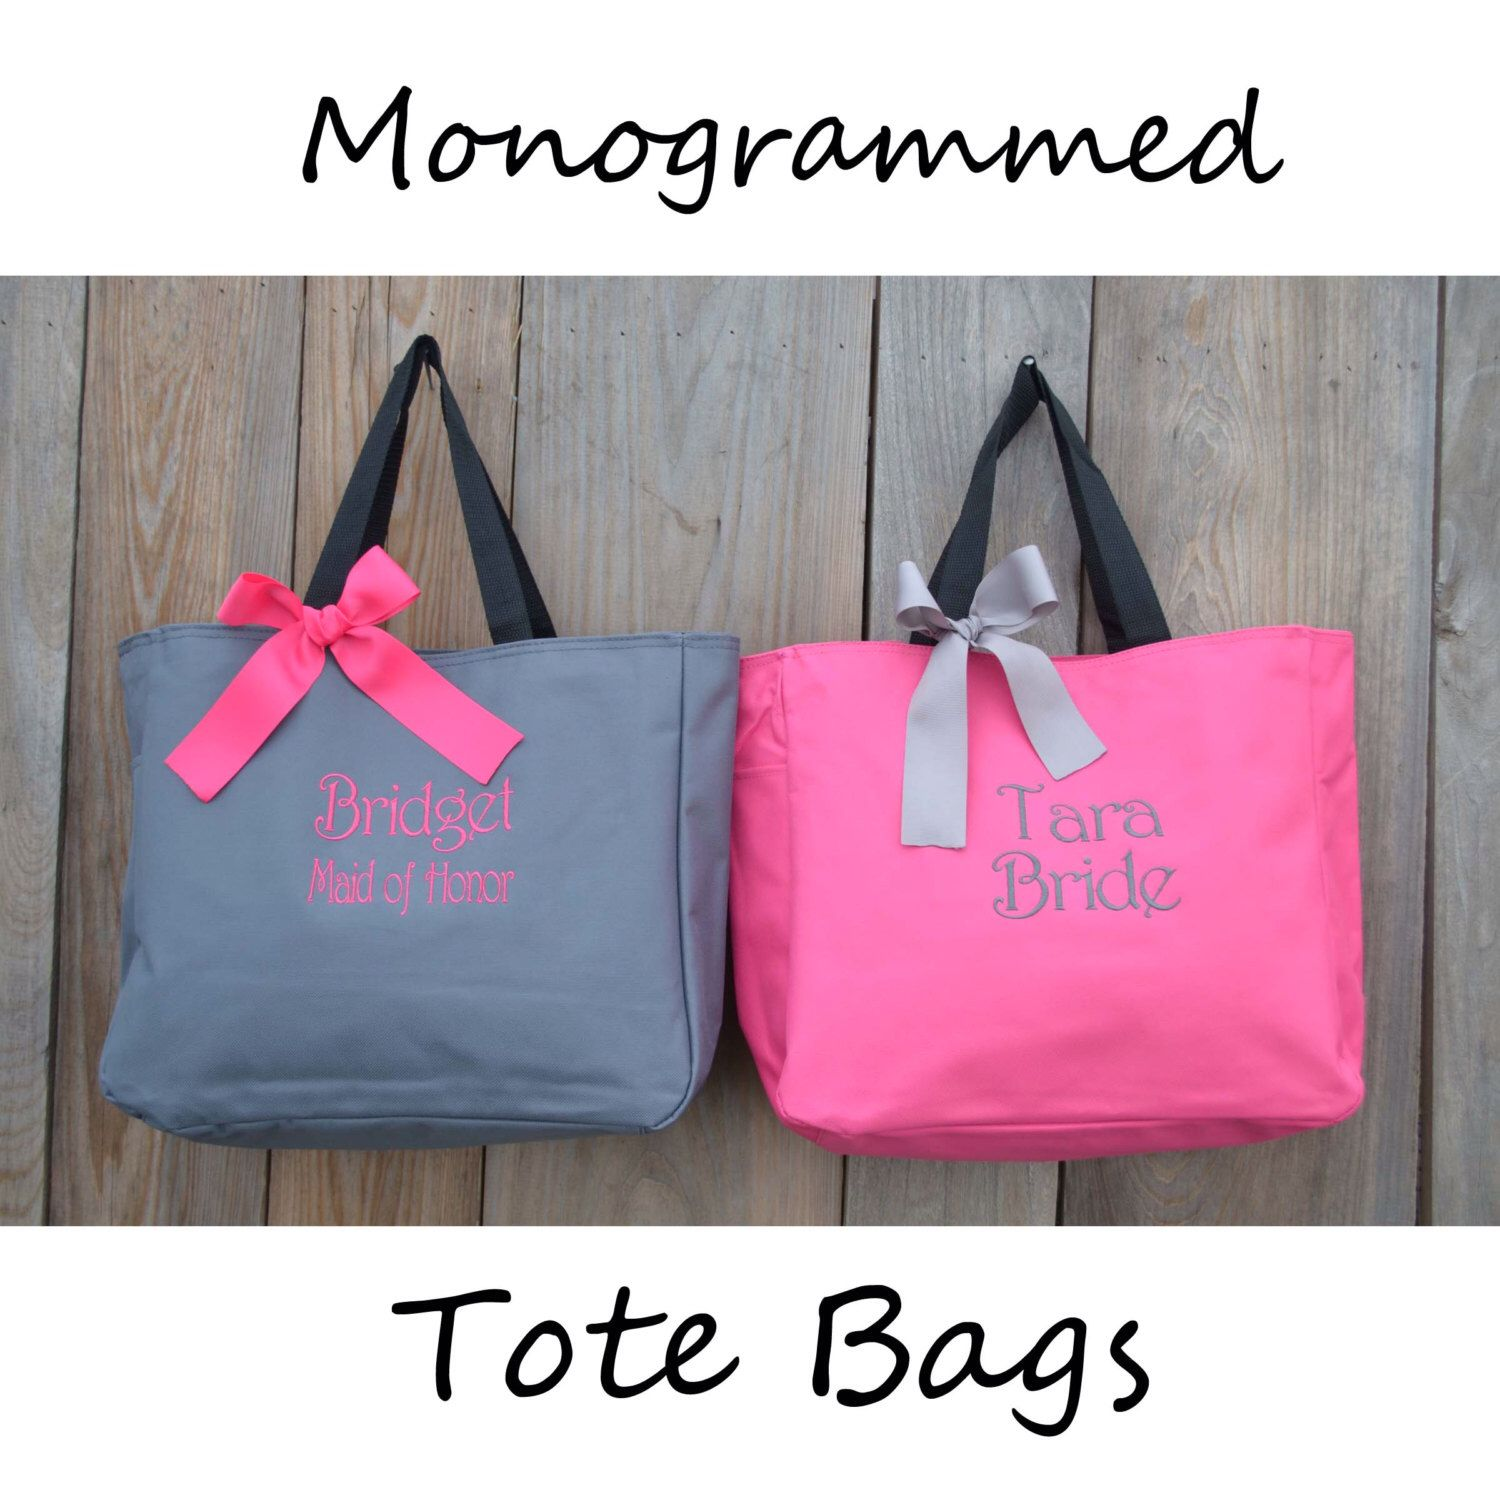 6 Personalized Bridesmaid Gift Tote Bags Bridesmaids Monogrammed By Personalizedgiftsbyj